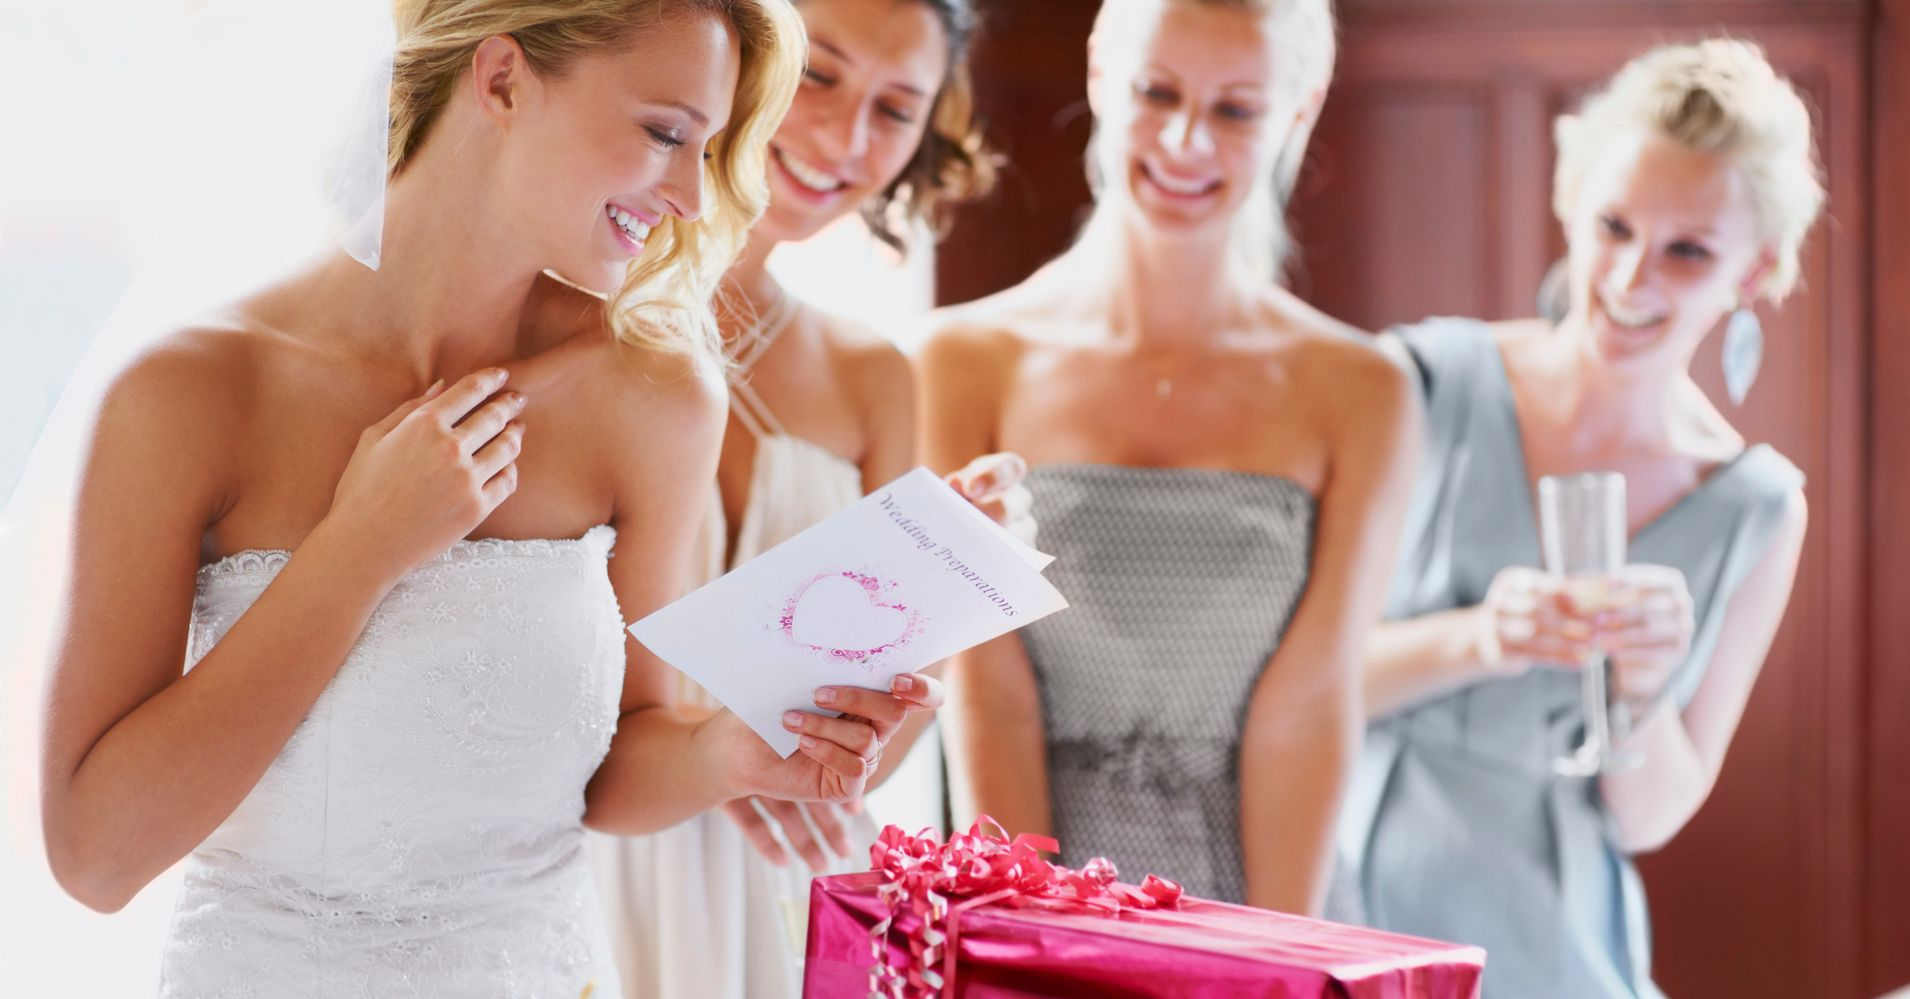 How Much Money Should Be Given As A Wedding Gift: Exactly How Much Money To Give As A Wedding Gift: Here Are